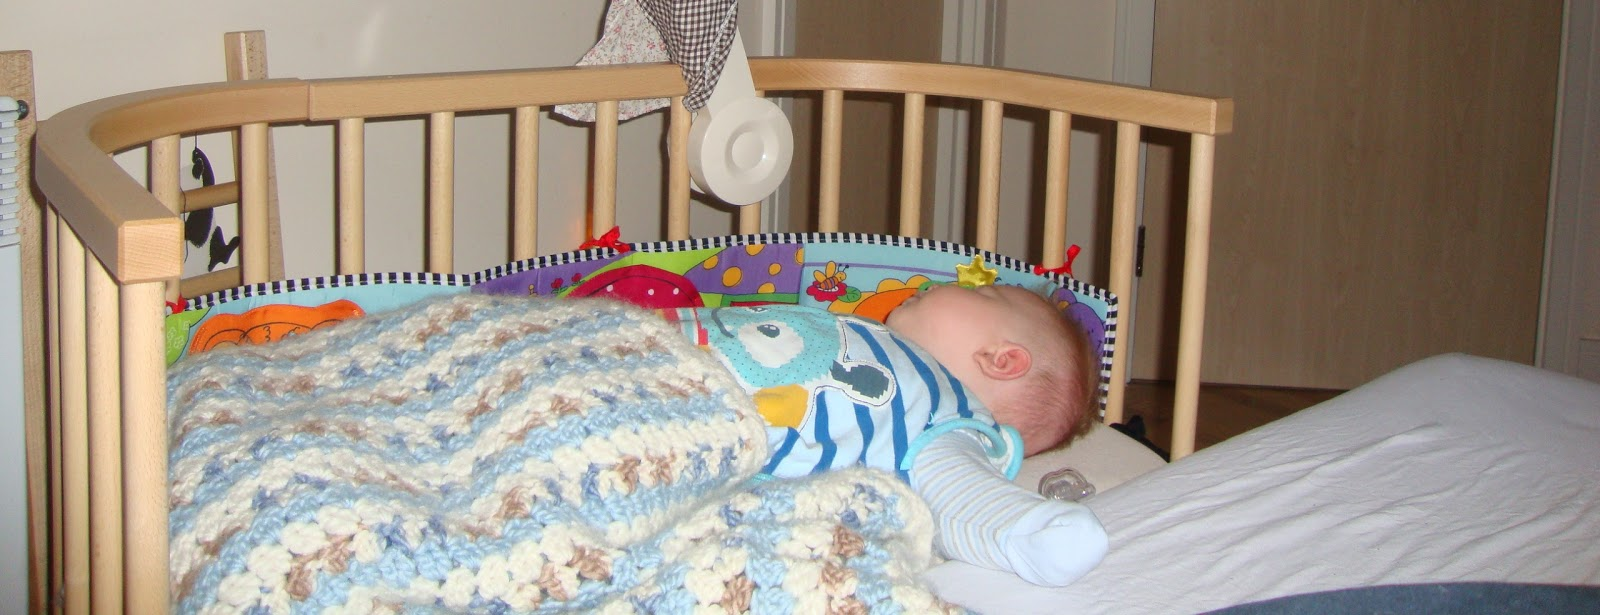 Welcome To My Baby Gadget Blog Flexible Bedside Cot To